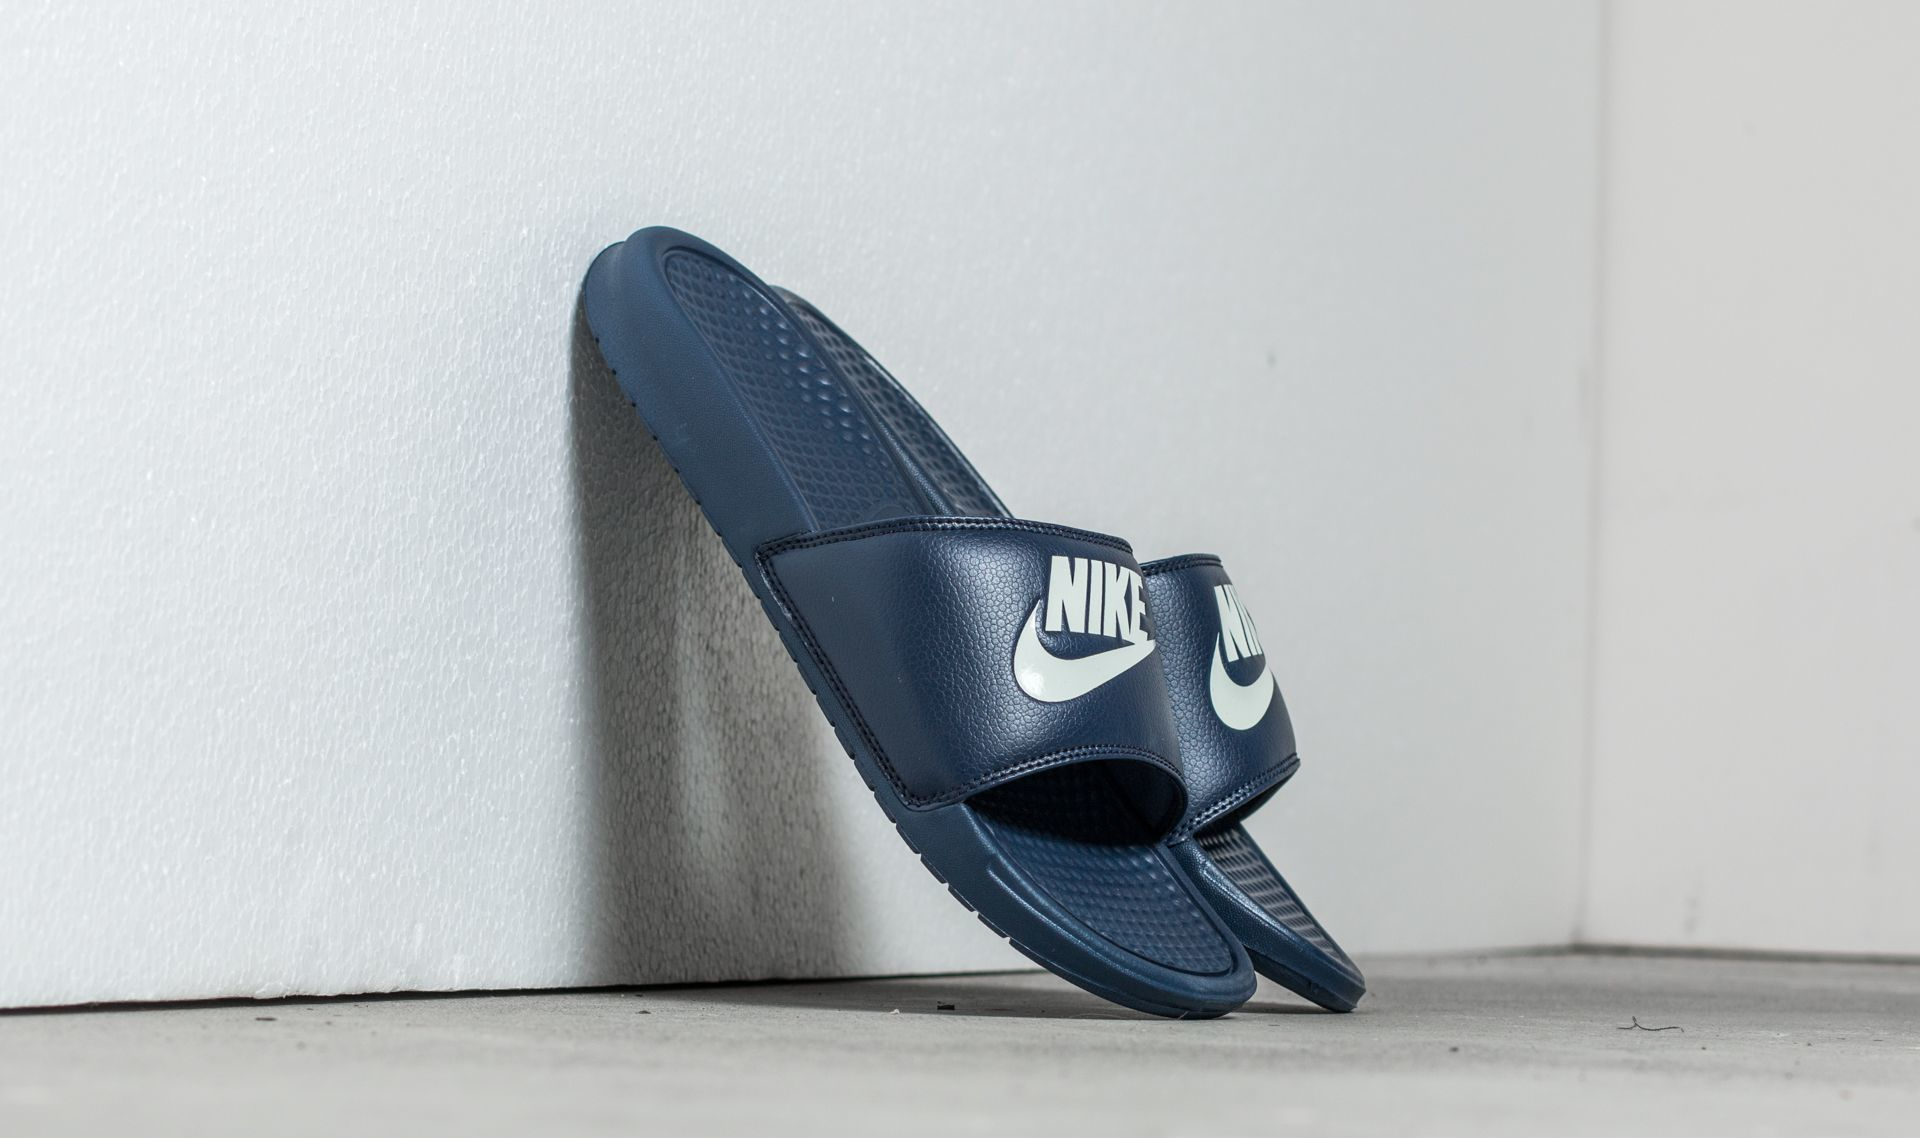 Nike Benassi Jdi Midnight Navy/ Windchill 343880-403